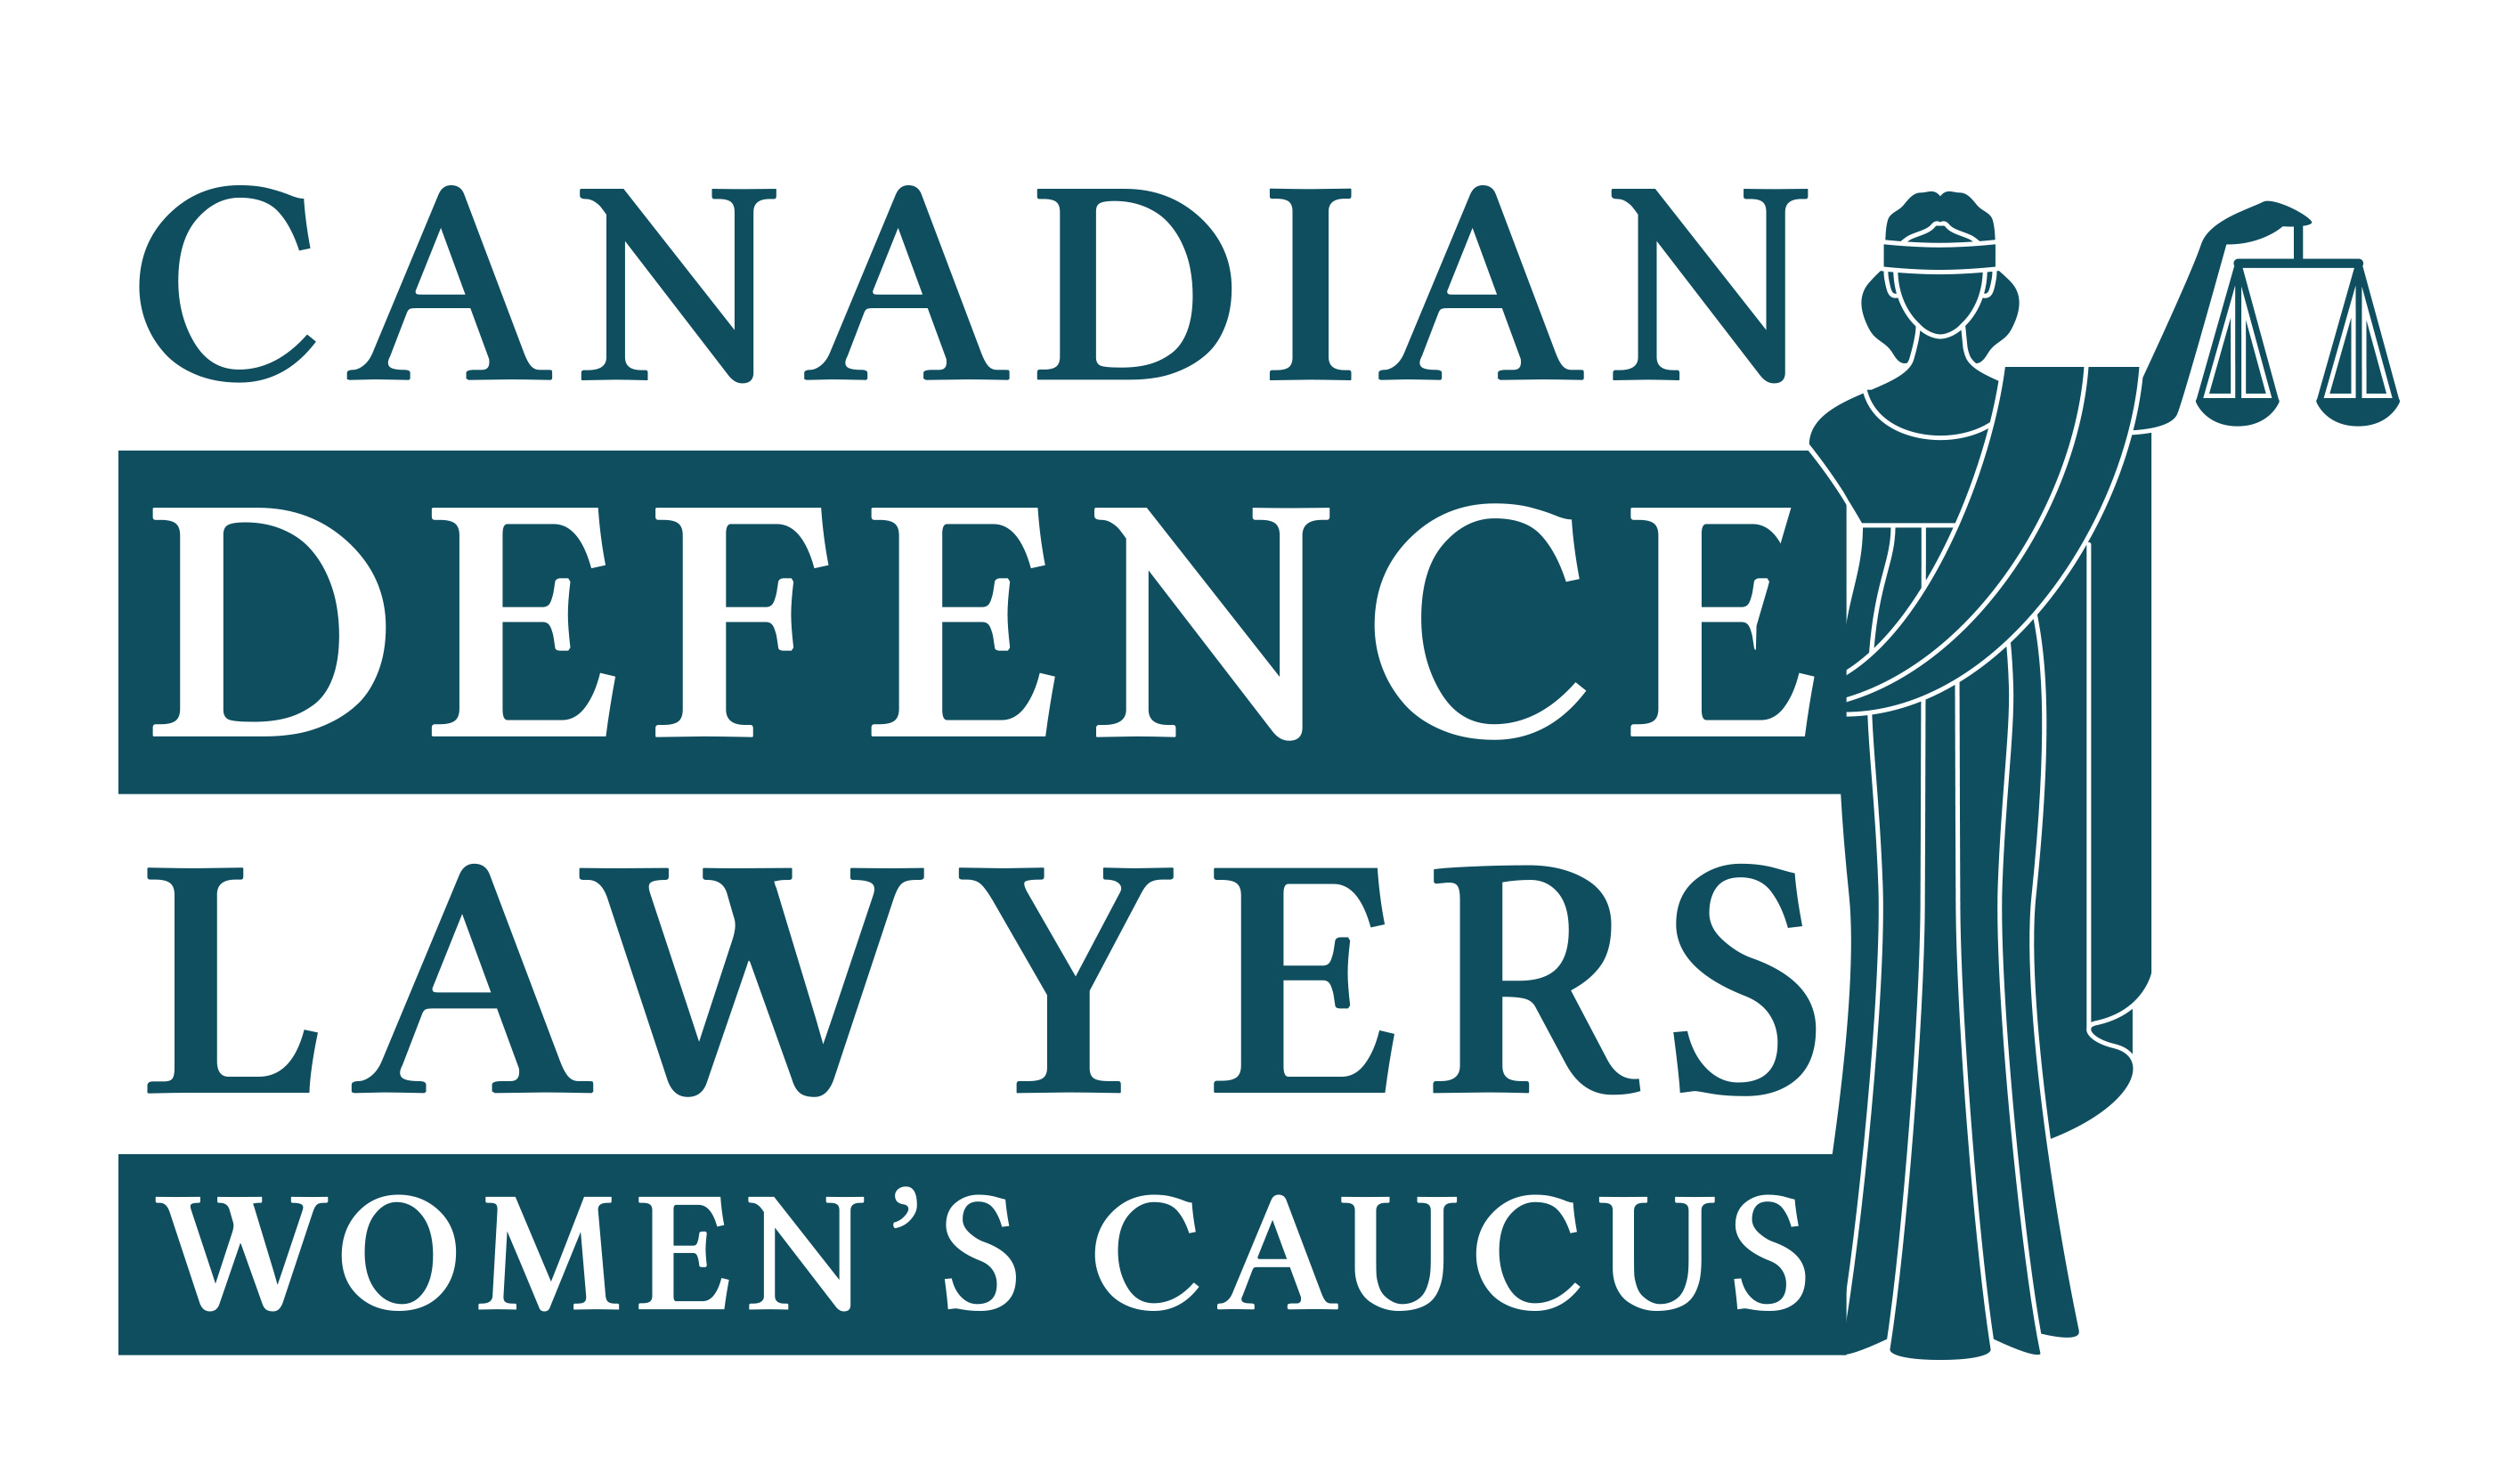 Canadian Defence Lawyers Women's Caucus logo